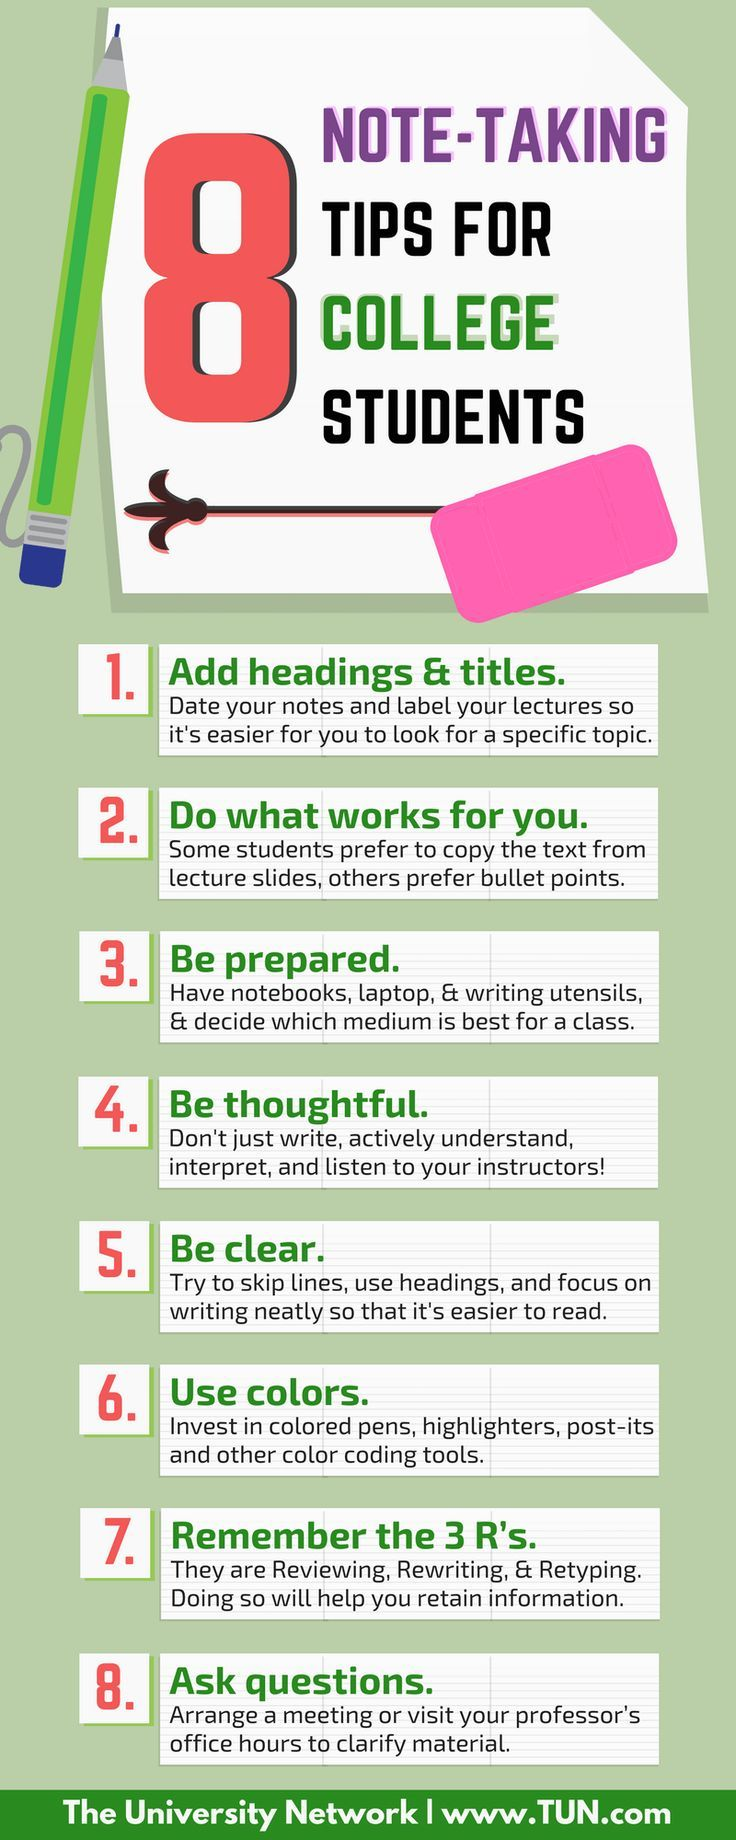 Here are 8 tips that will help you master the art of good note-taking in college.